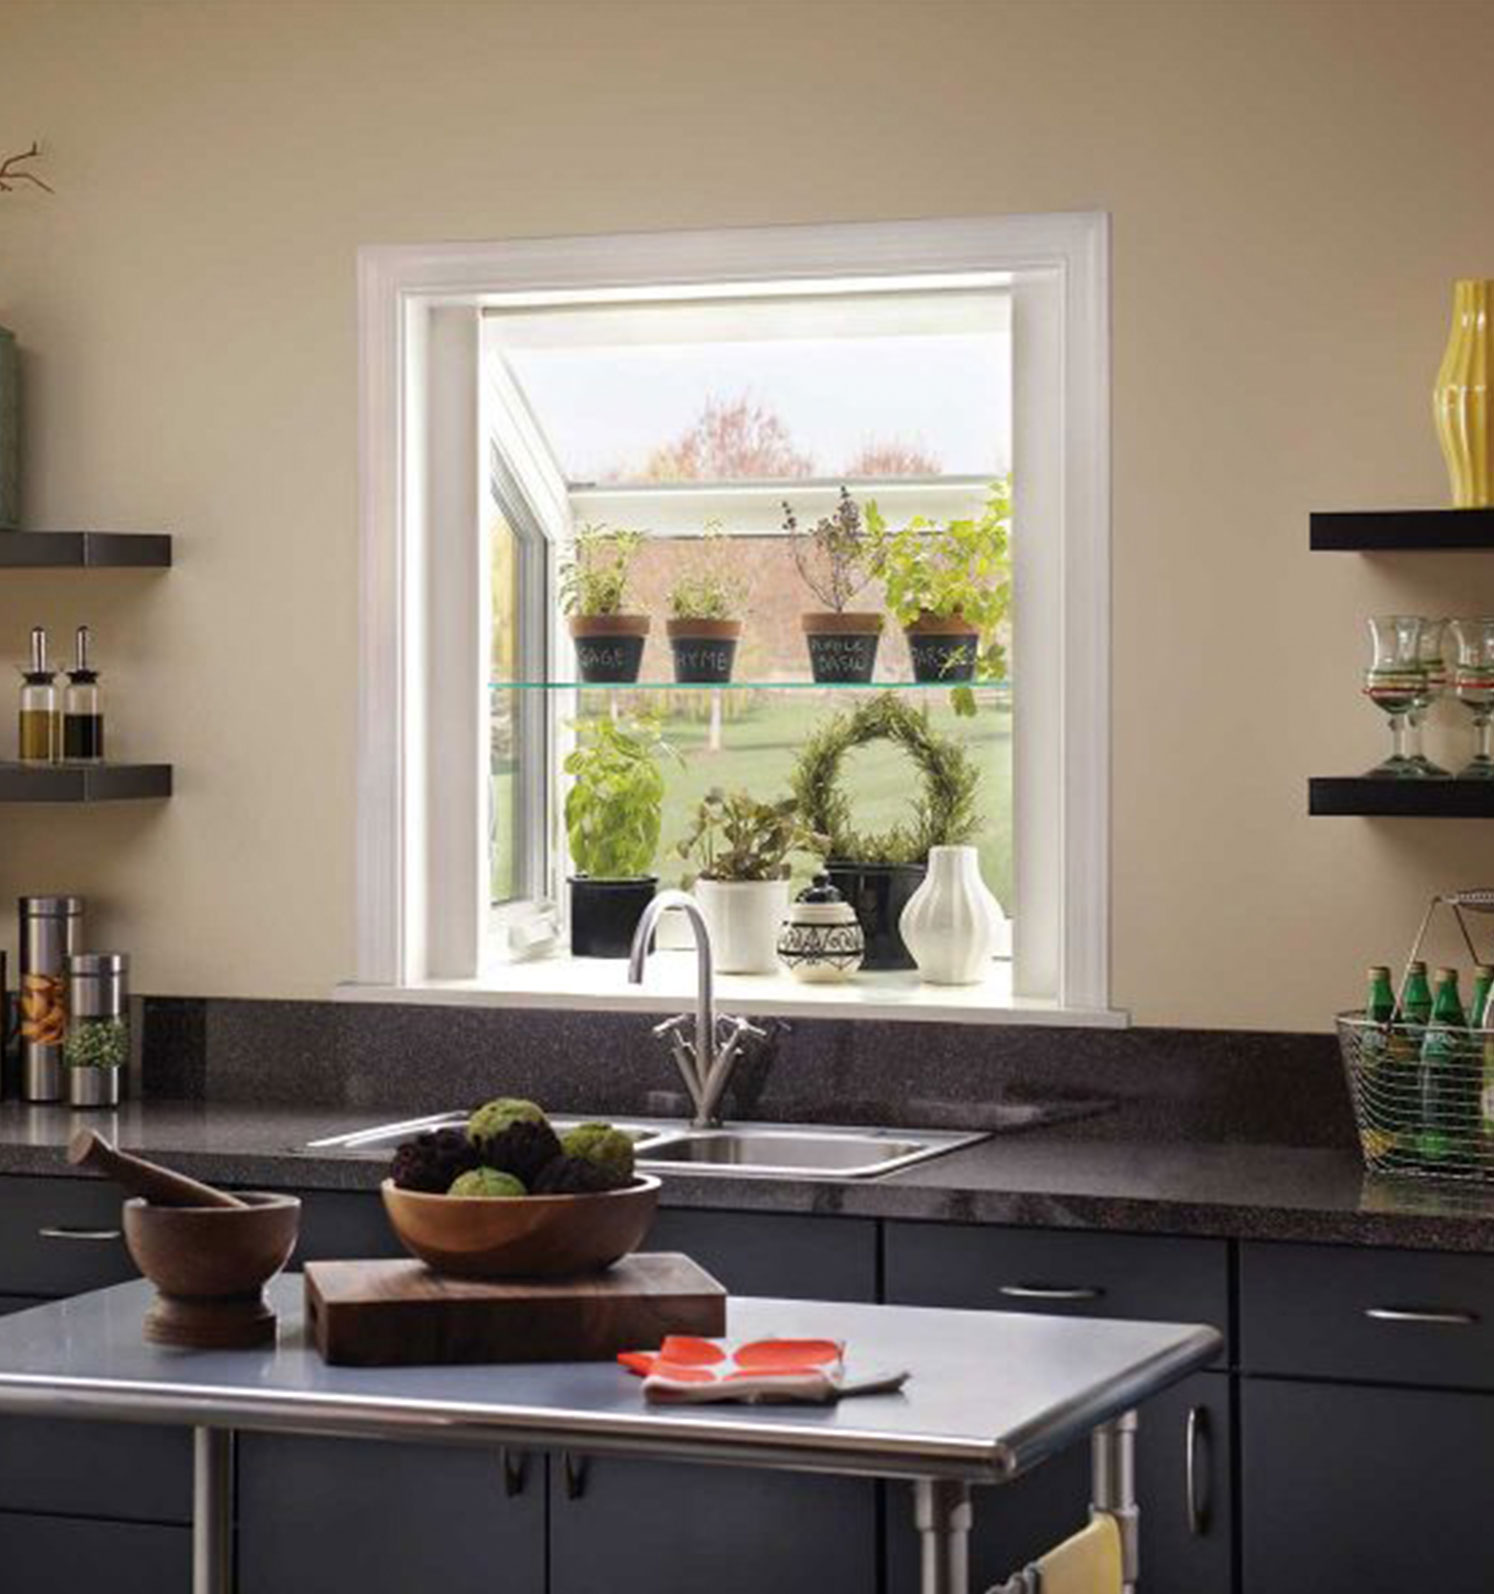 To add a touch of class to your home consider garden windows by The Folding Door Store to create small gardens inside.